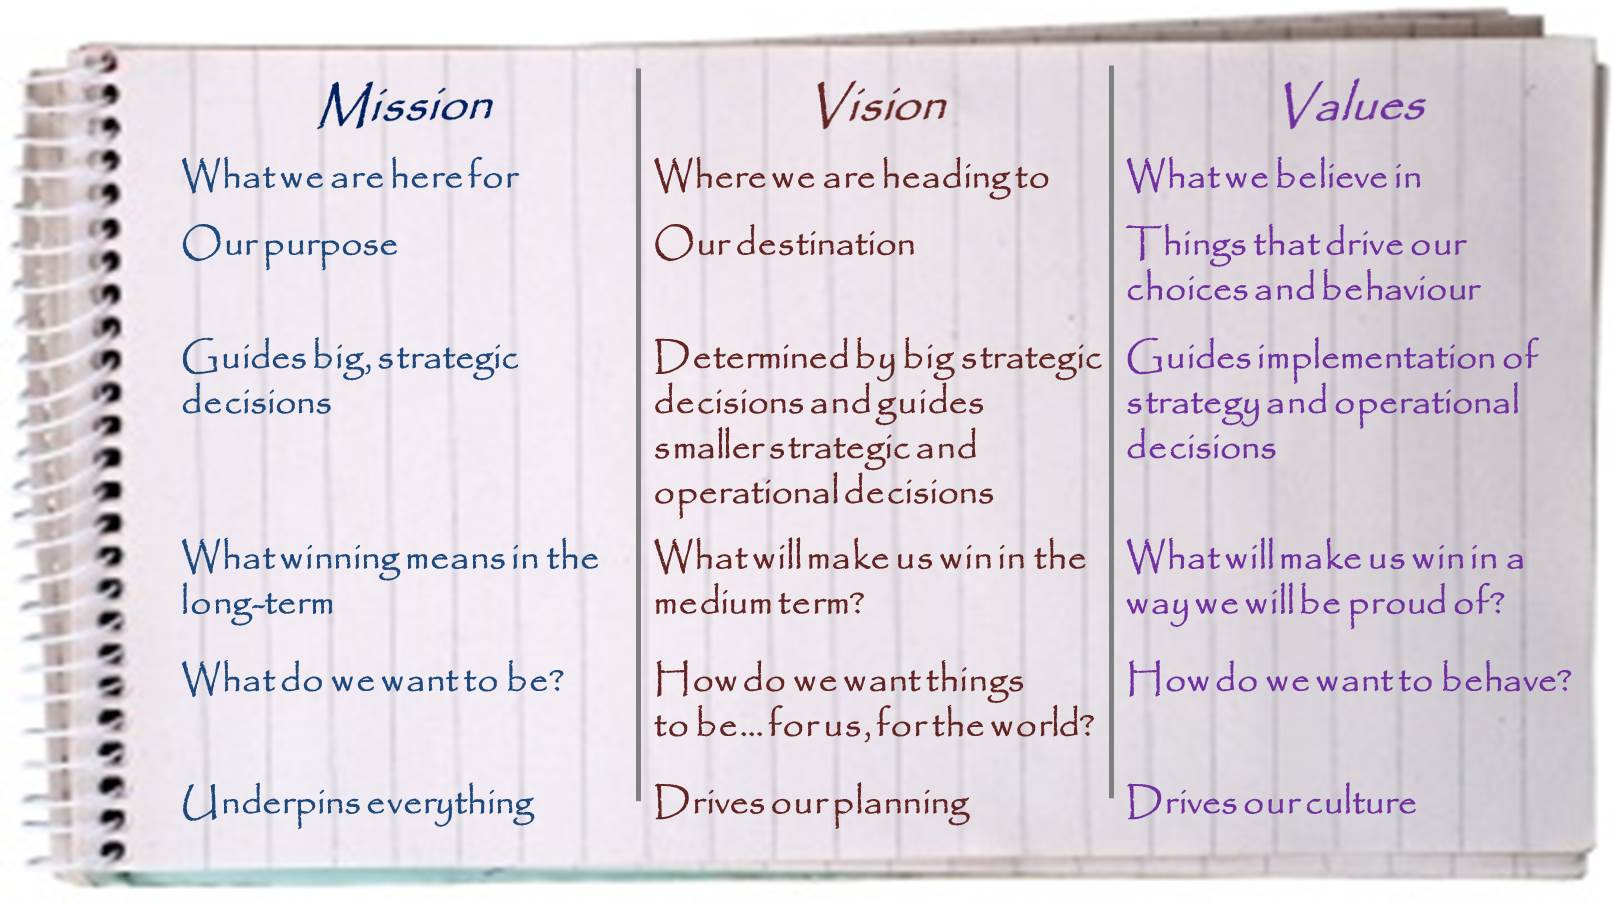 write mission statement vision learn how to write powerful inspiring mission statements and vision statements this article and video